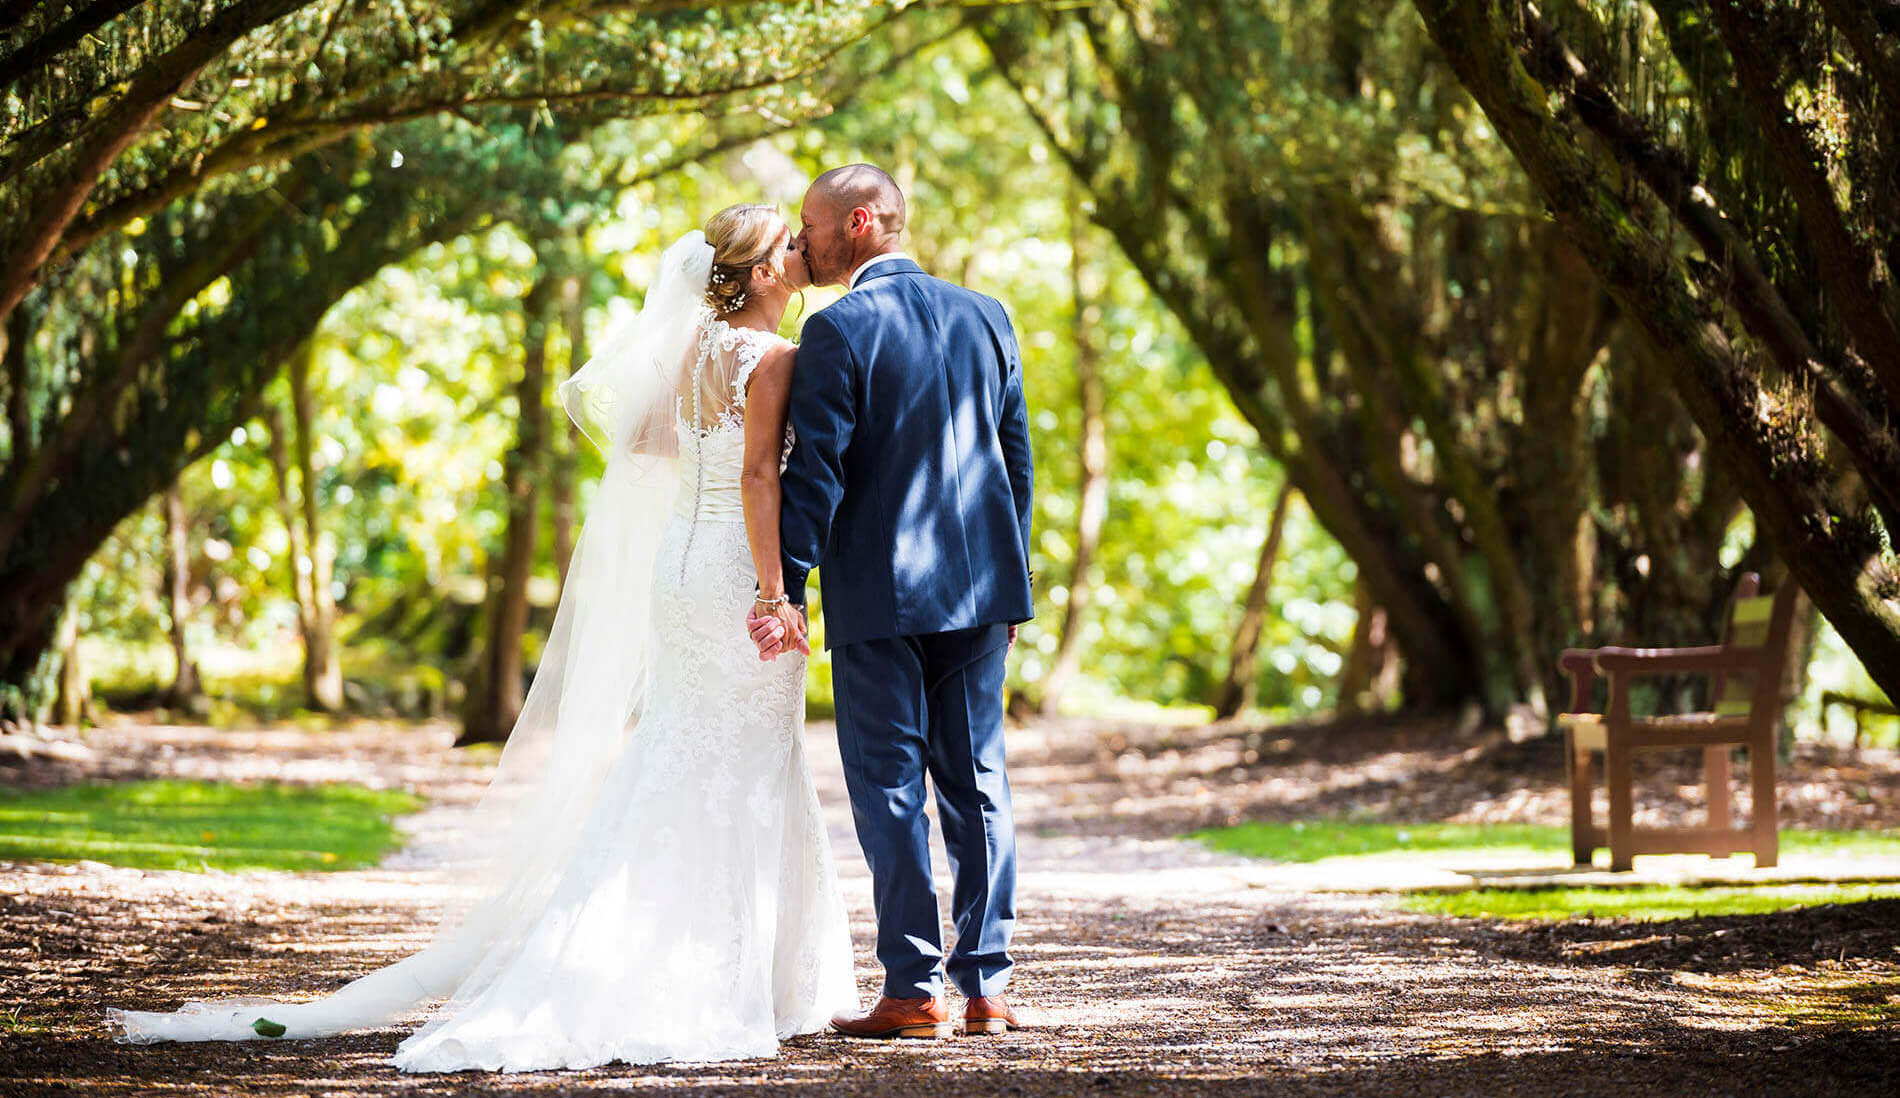 Wedding-Photography-Birmingham-by-Wedding-Photographer-Philip-James-based-in-Solihull-Covering-The-West-Midlands-Beyond.-I-Also-Love-To-Shoot-Desination-Weddings-52-of-60